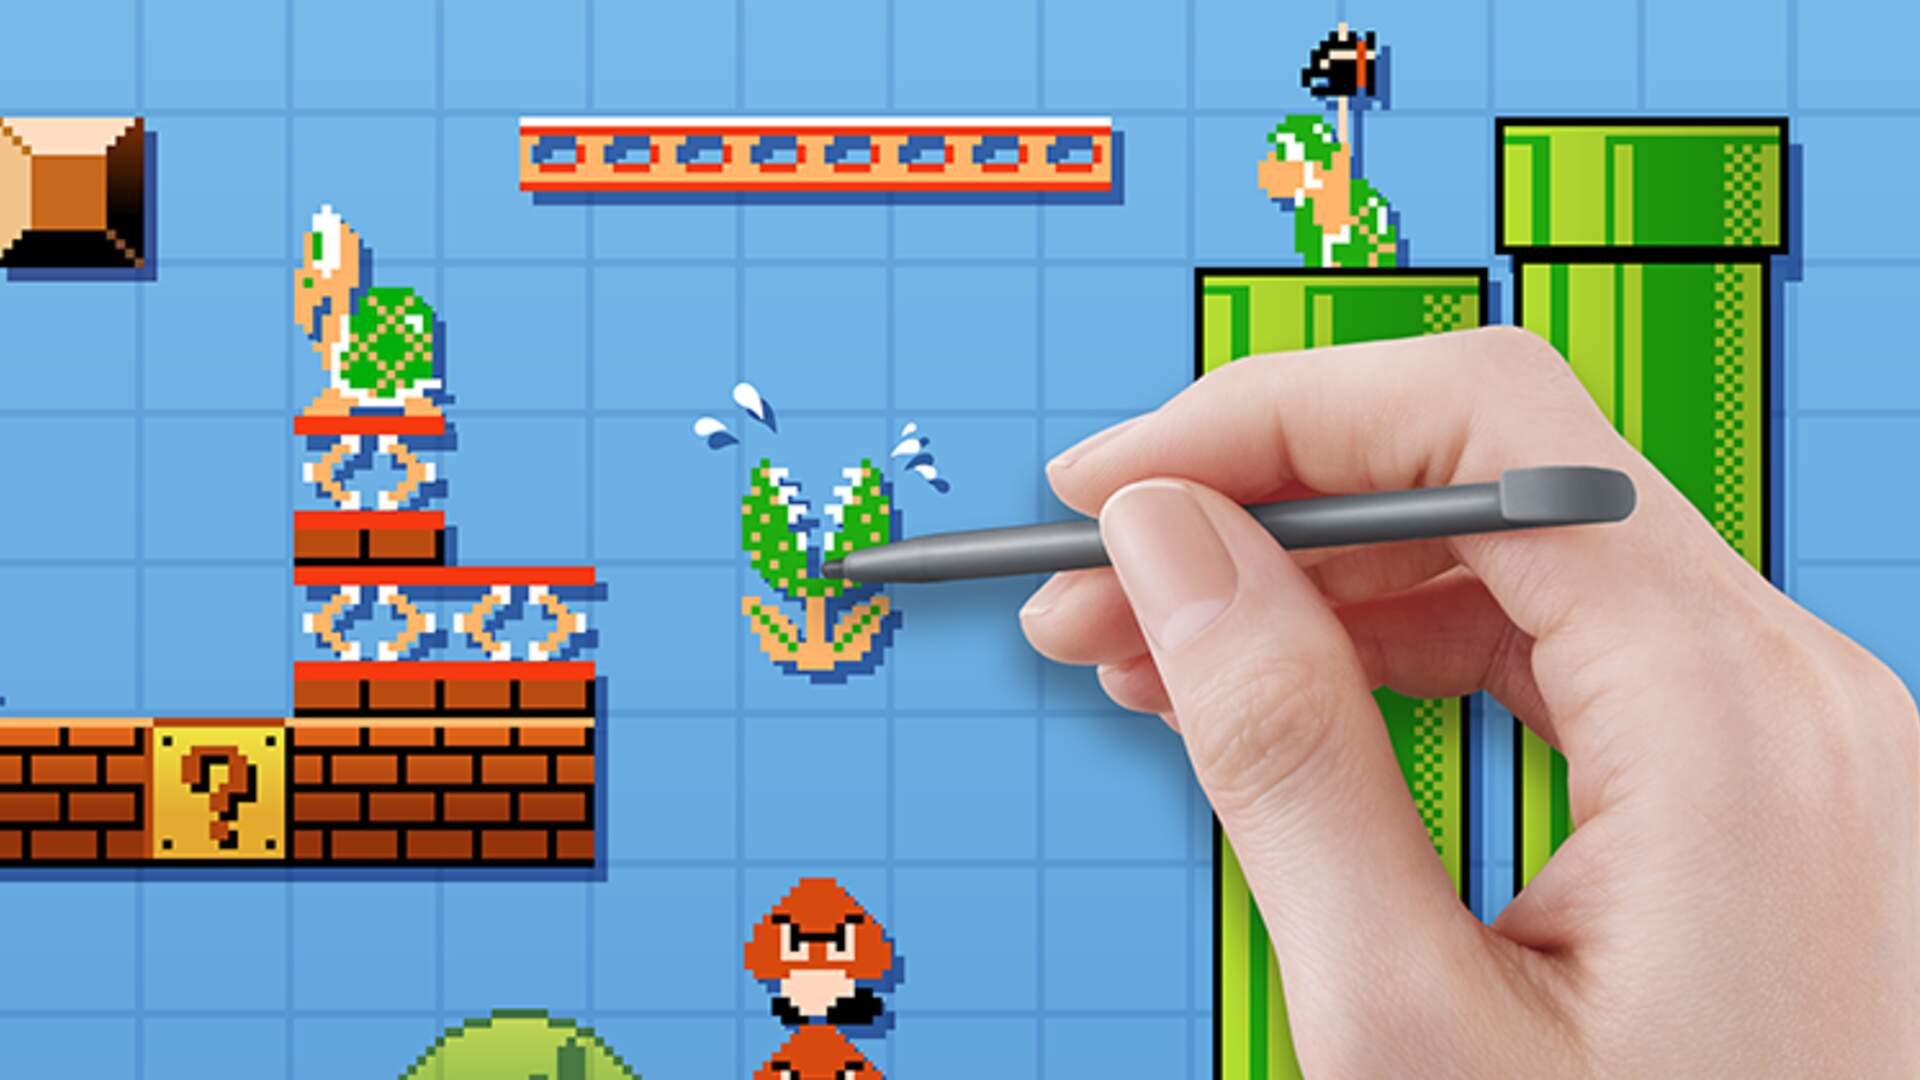 How Nintendo is Offering New Perspective on a Legacy Through Mario Maker